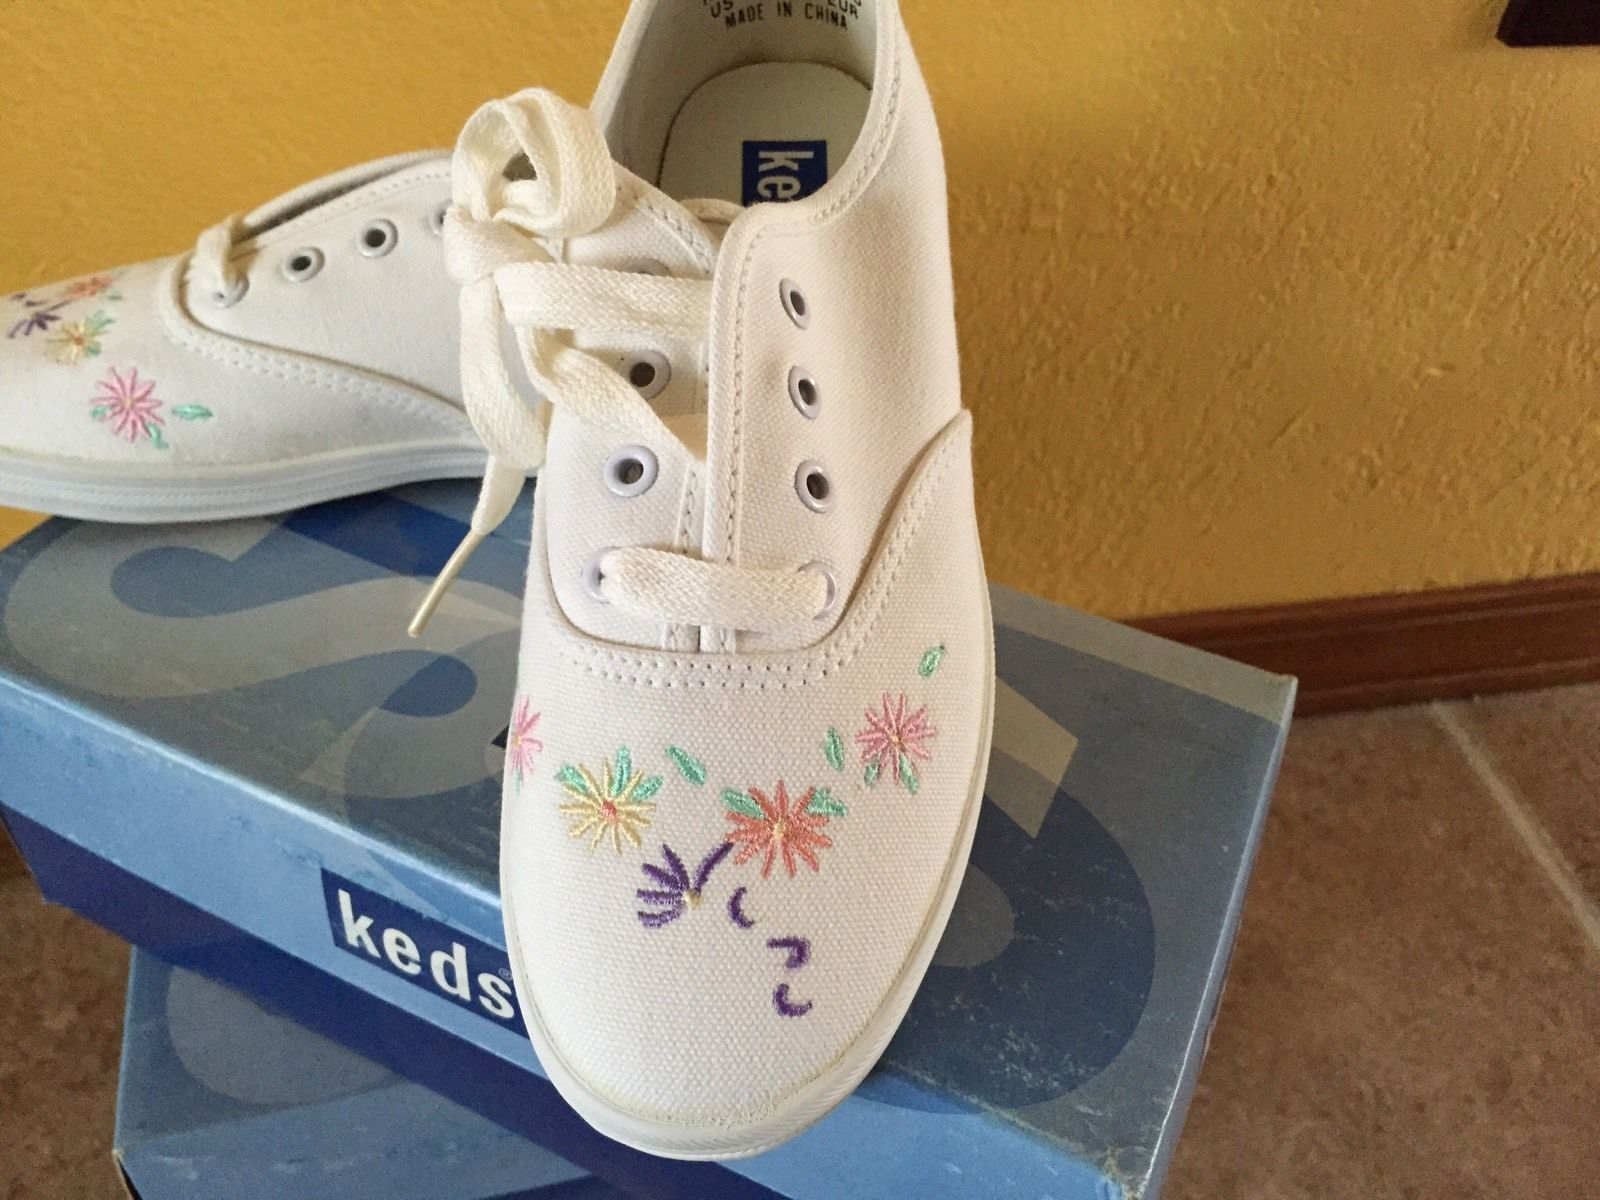 93672a28e5f56 Keds Sneakers Girls Shoes White Canvas Daisy and 50 similar items. 57